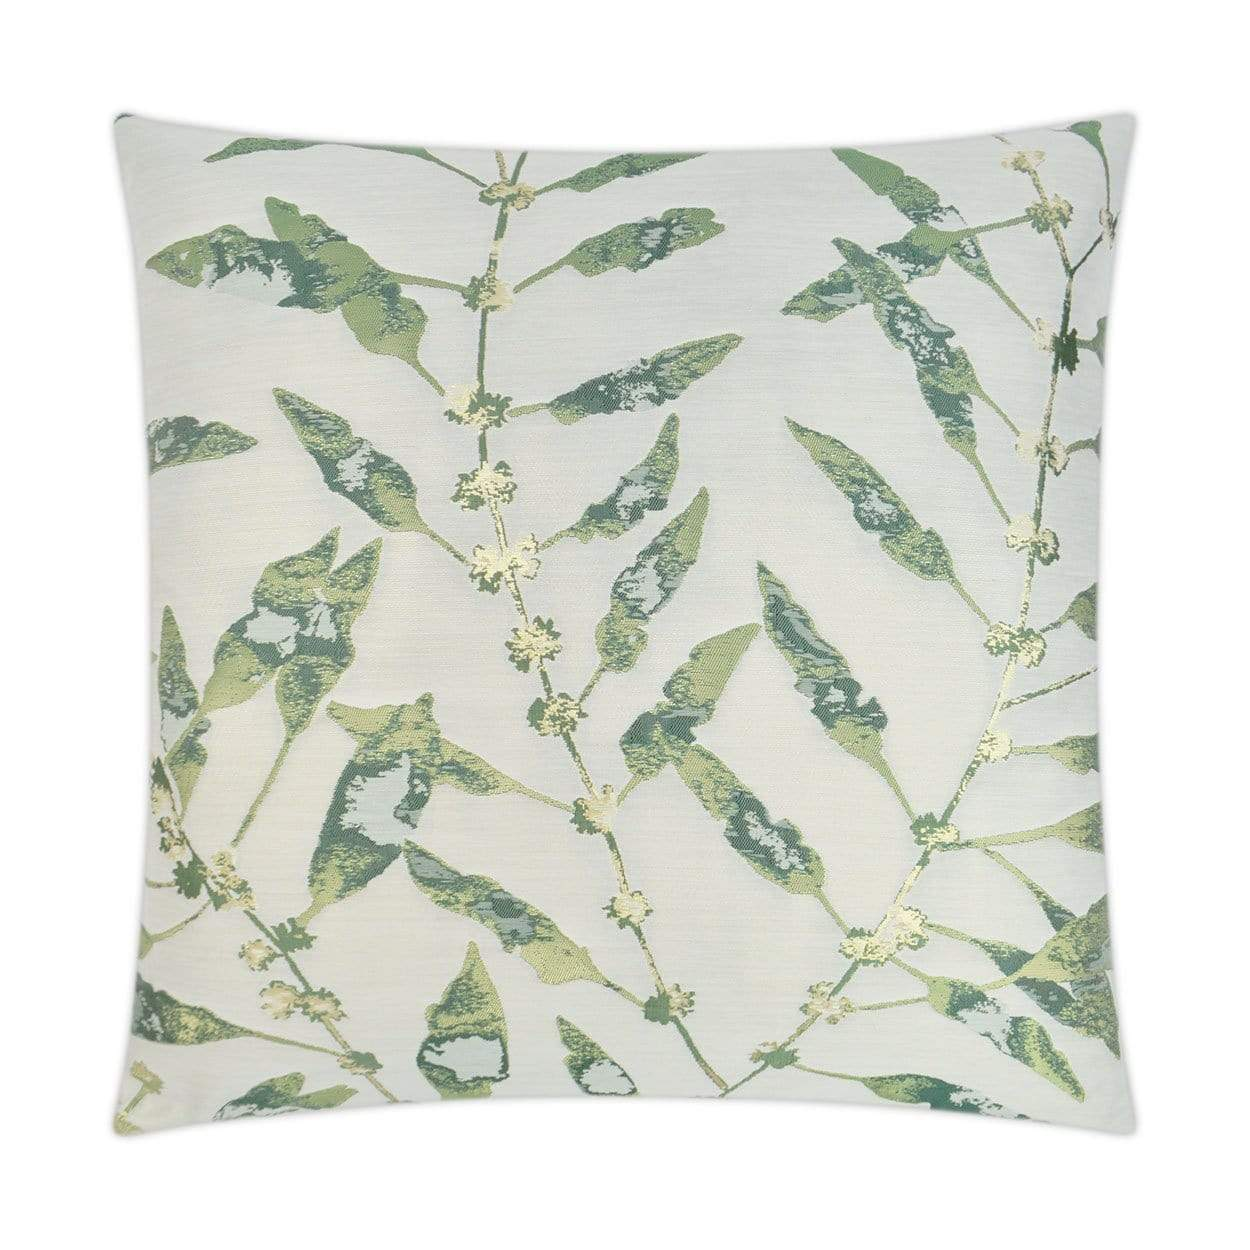 D.V. Kap D.V. Kap Branches Pillow - Available in 2 Colors Ash 3158-A